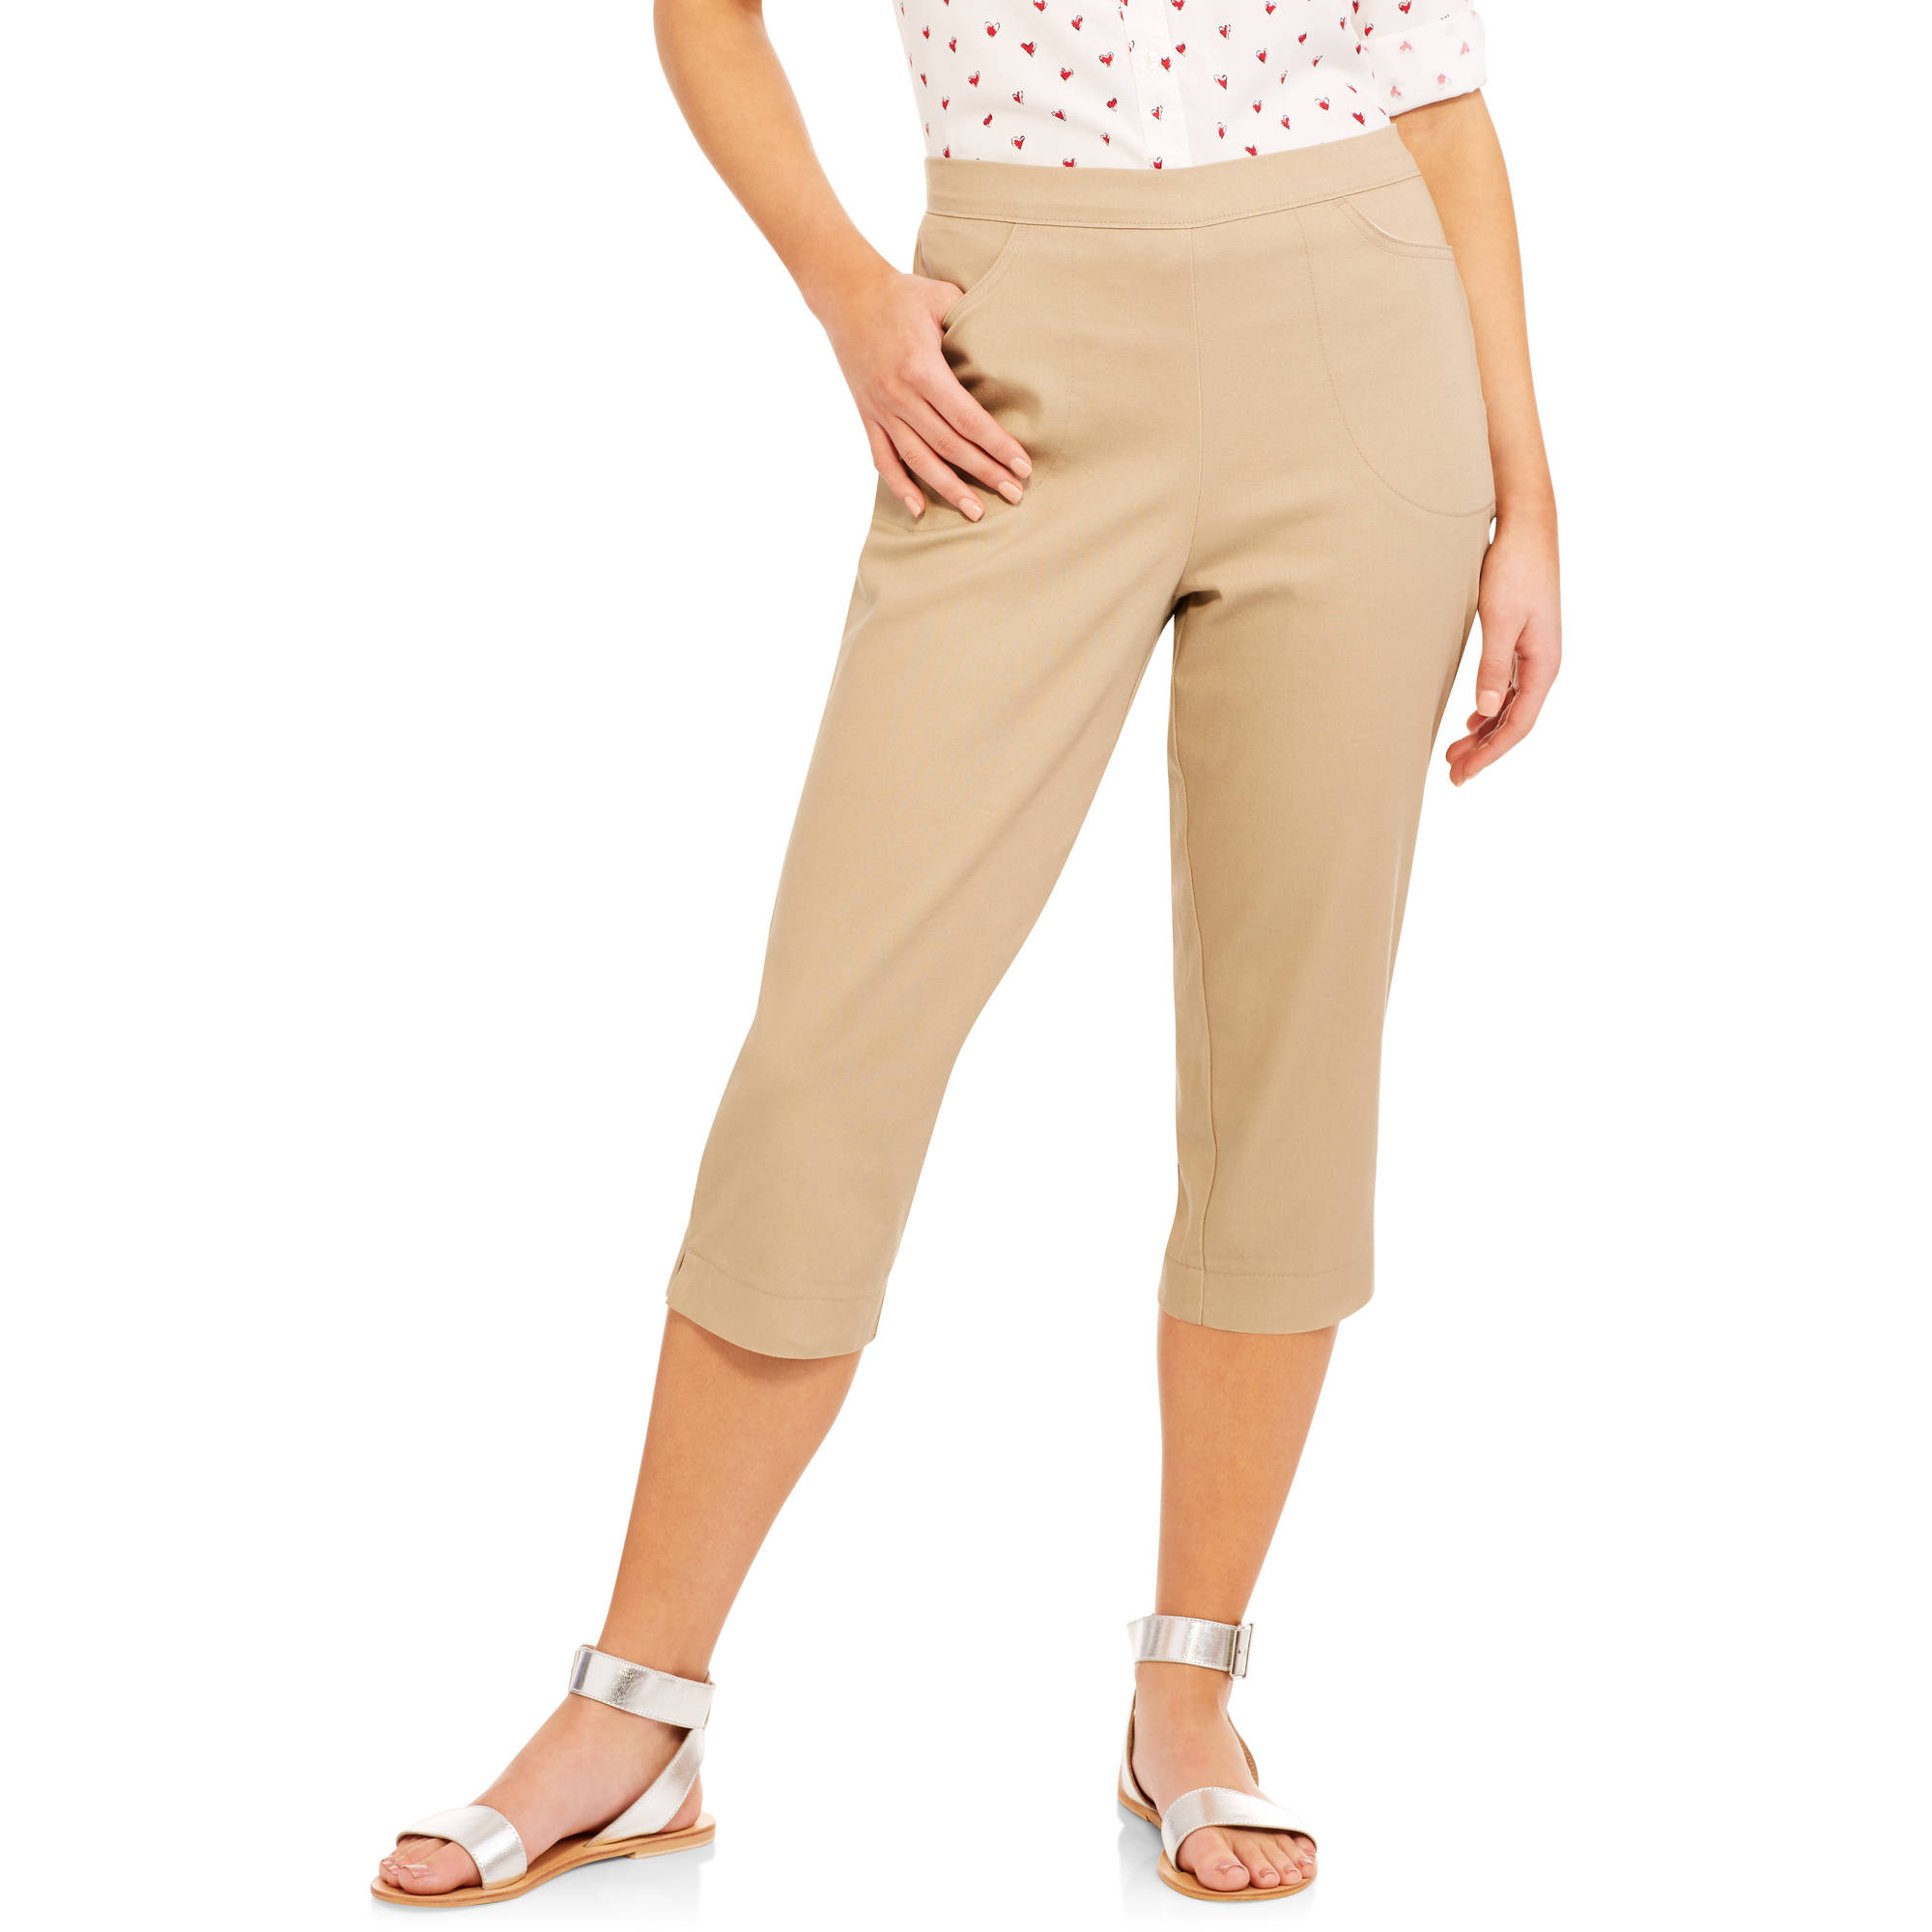 Real Size Women's 2-Pocket Stretch Capri Pants - Walmart.com